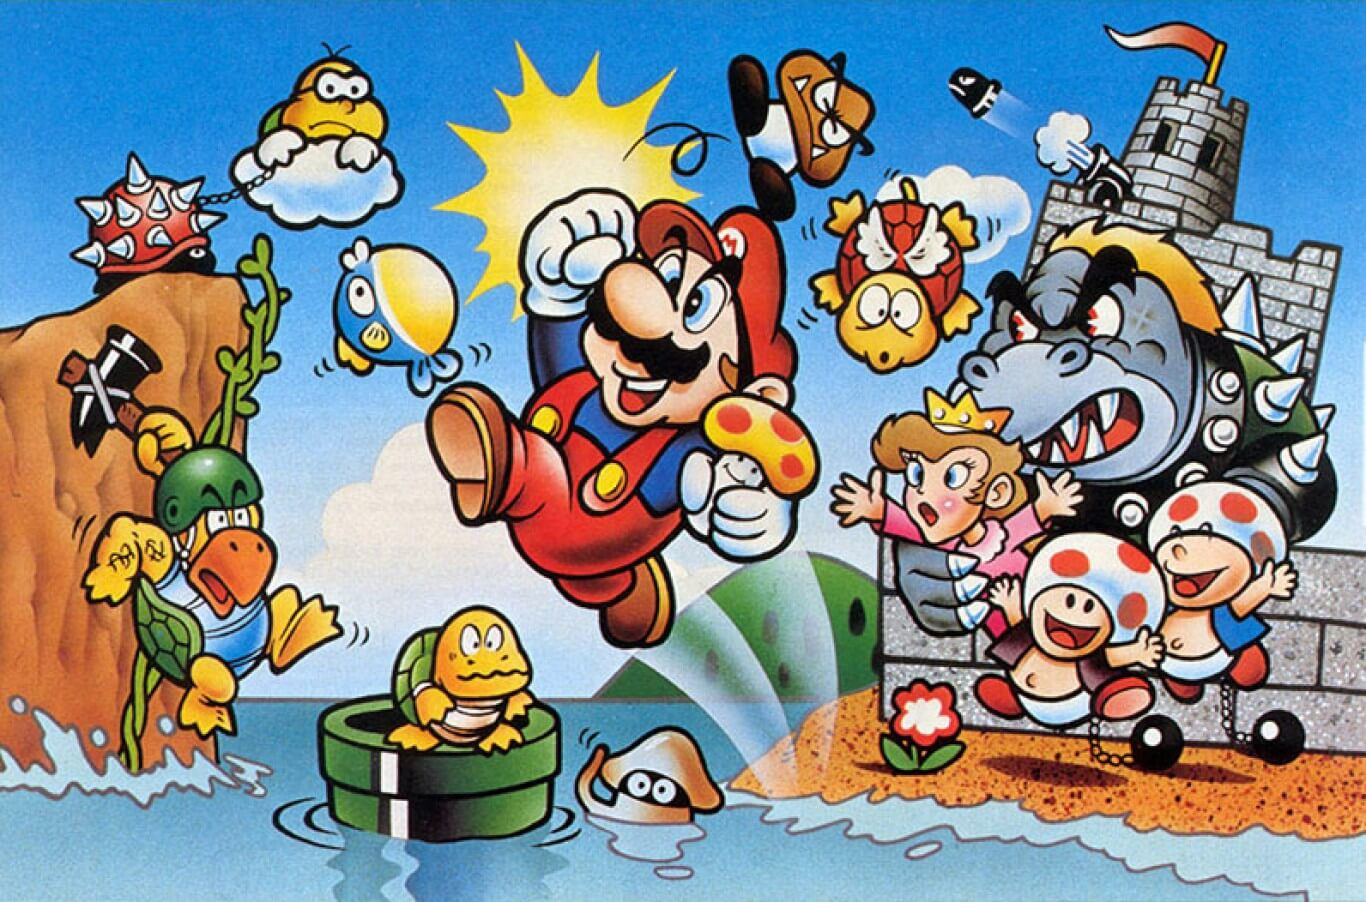 Super Mario Bros. featured